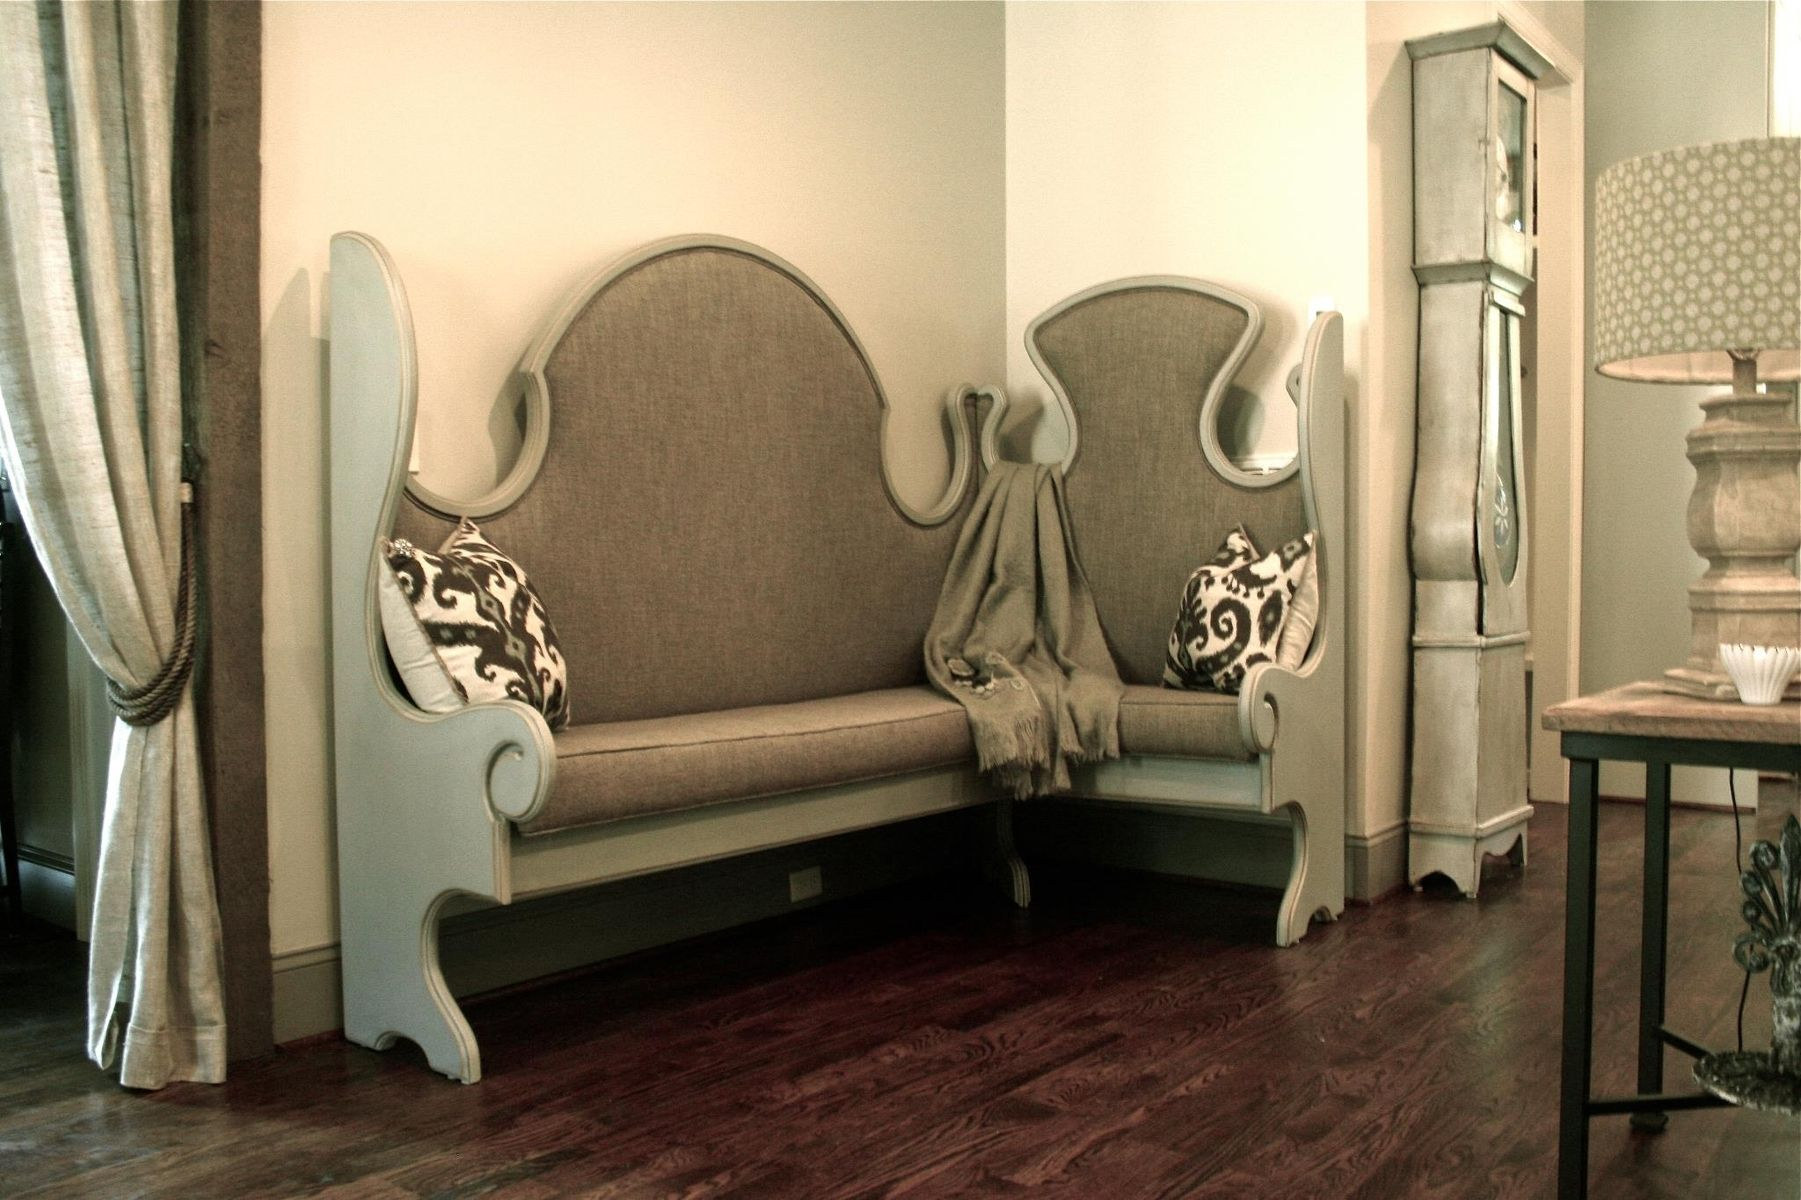 Custom Corner Banquette By Kidd Epps Art Shop Custommade Com